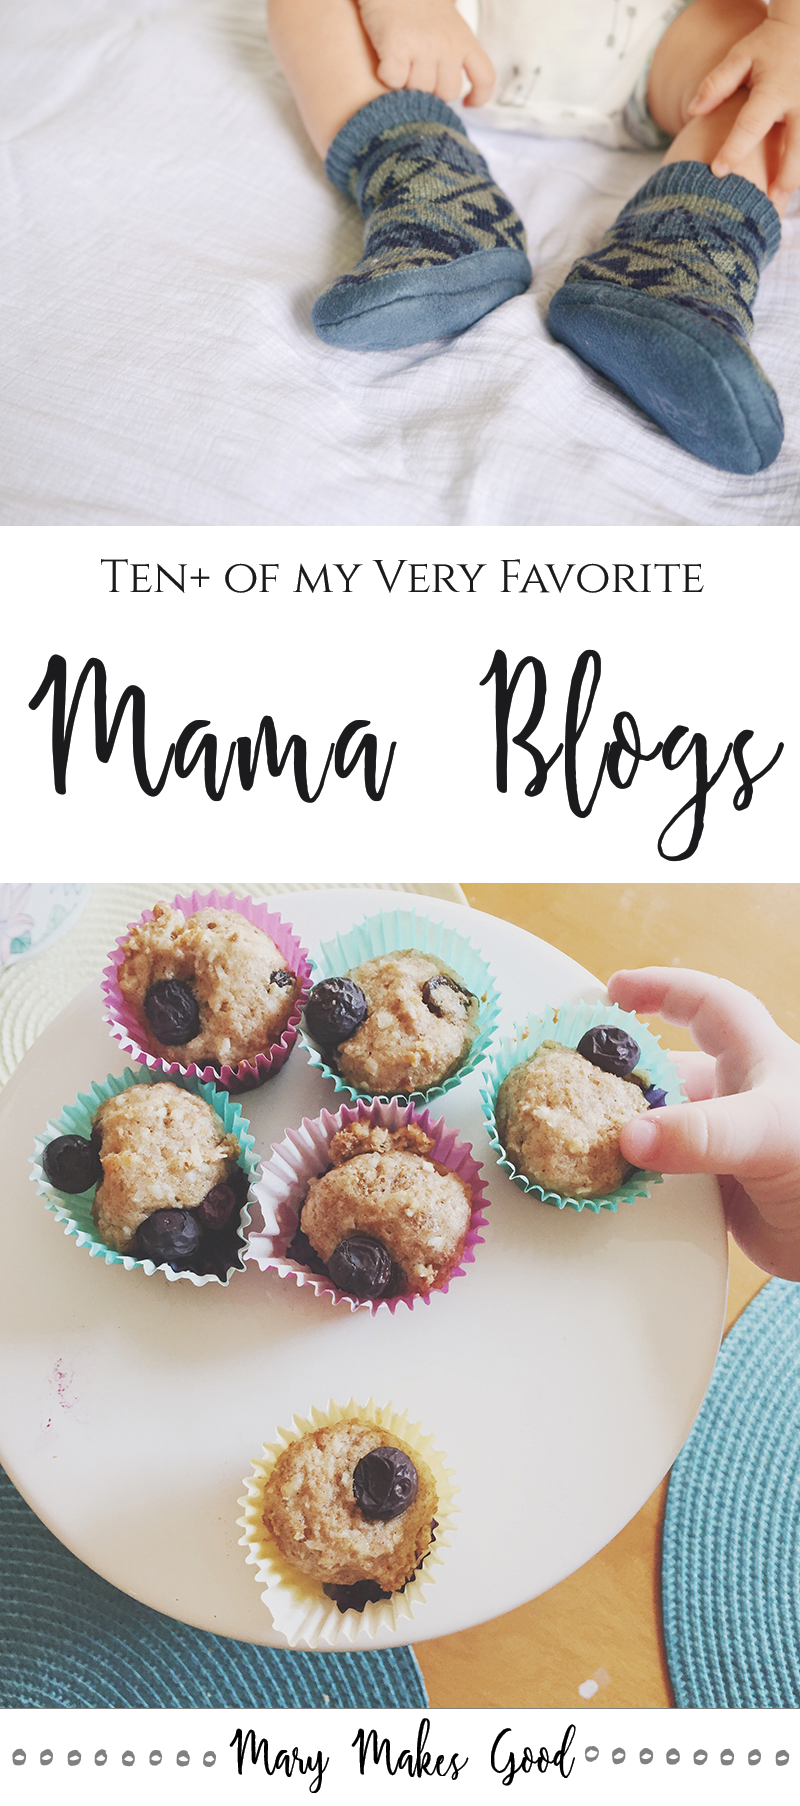 My Favorite Mama Blogs